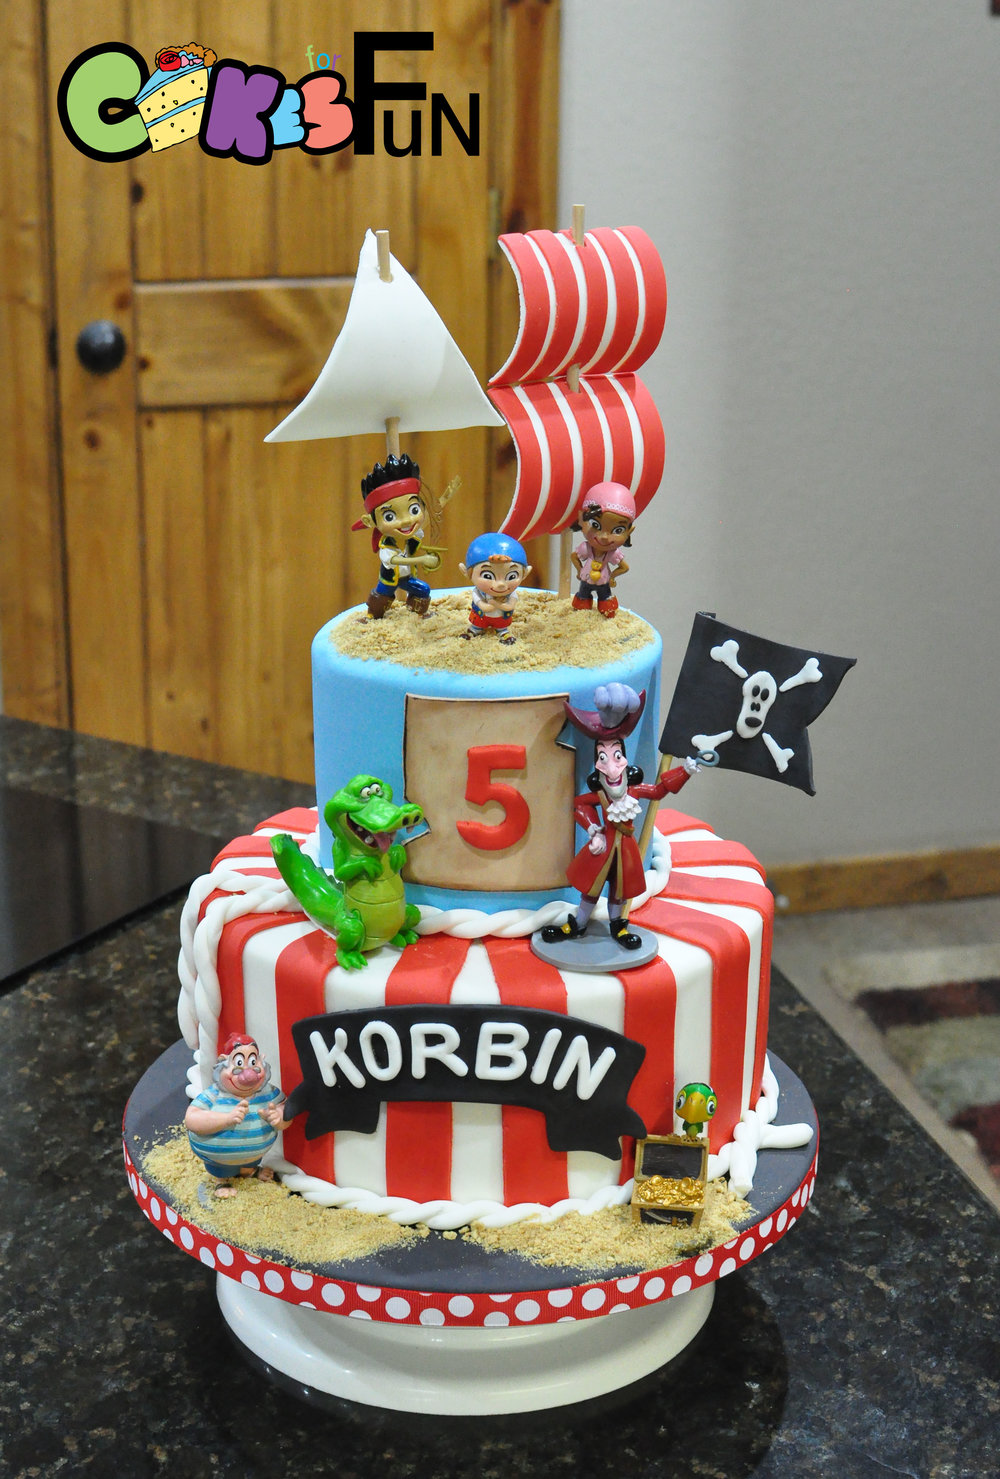 PIrate cake - tiffany-0120-18.jpg